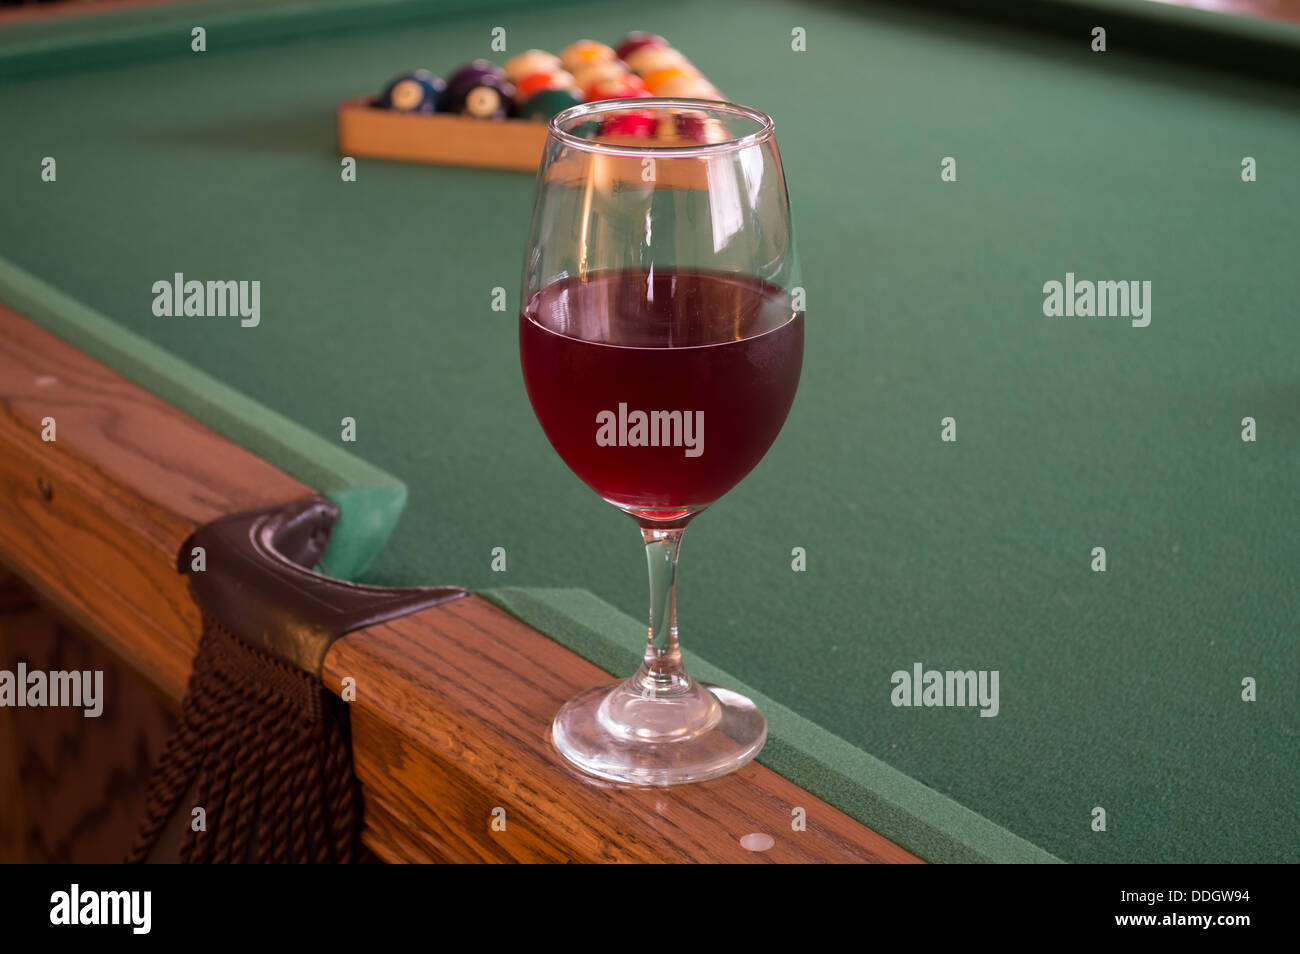 red wine in a single clear glass on a pool table with a rack of pool balls in the background sitting on an oak table - Stock Image